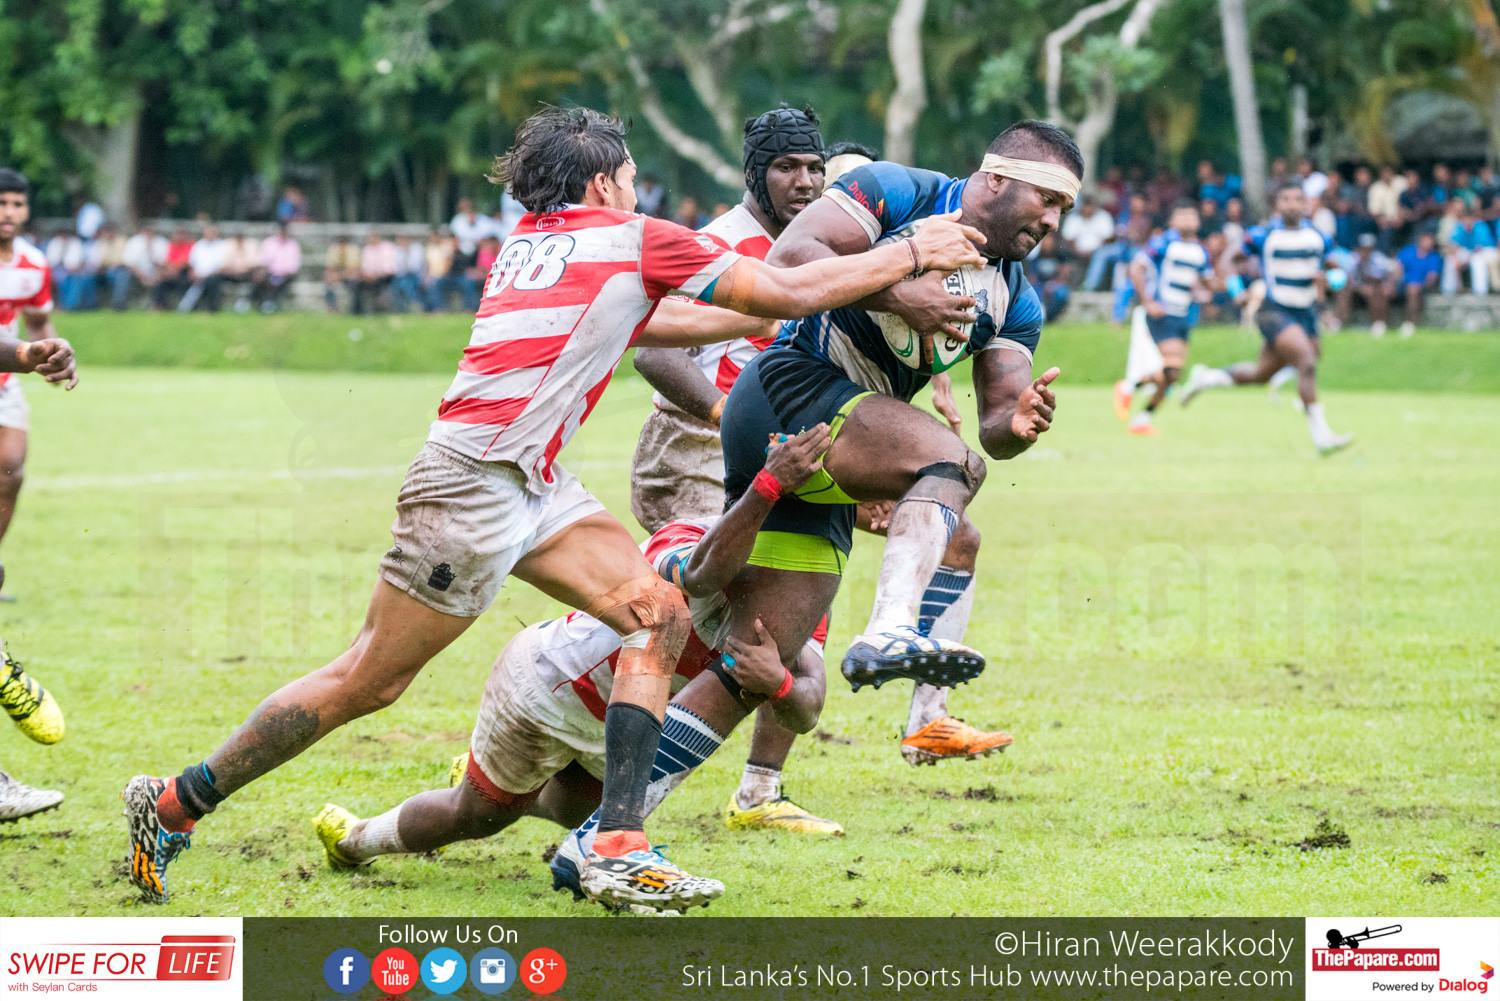 Navy SC v CH & FC - Dialog Rugby League